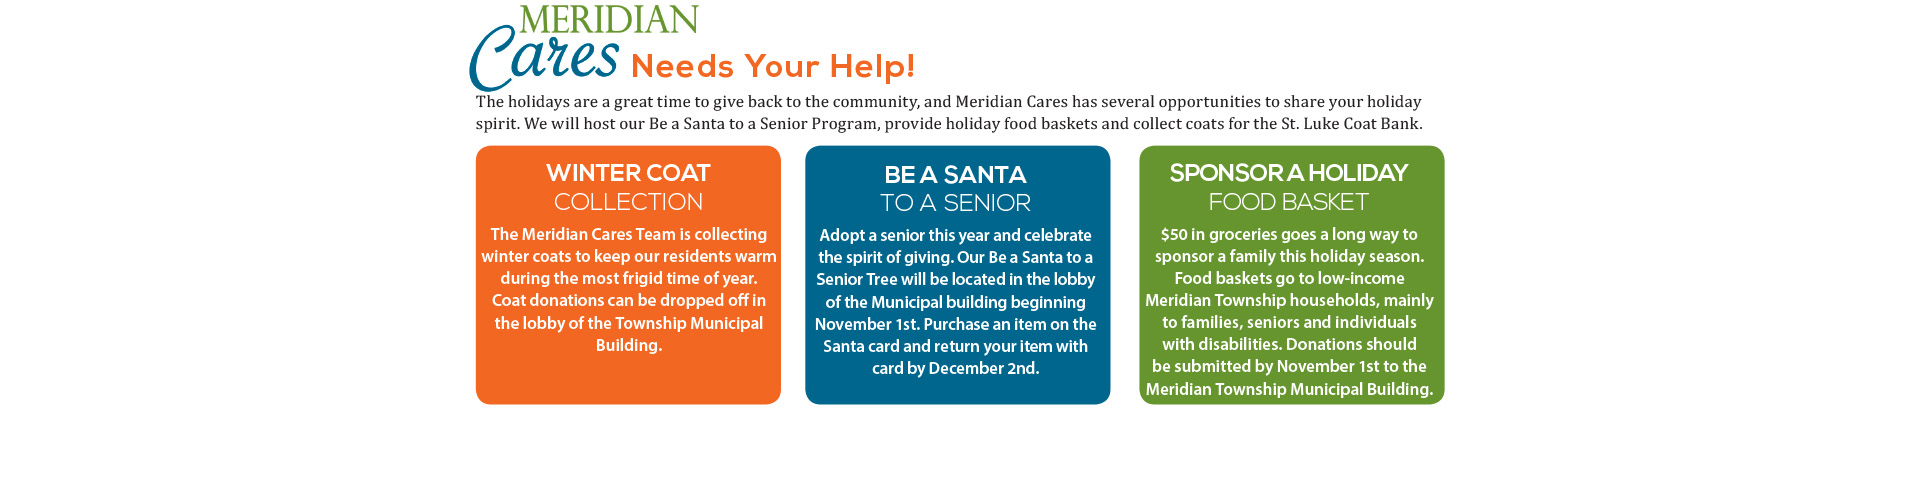 Meridian Cares Holidays